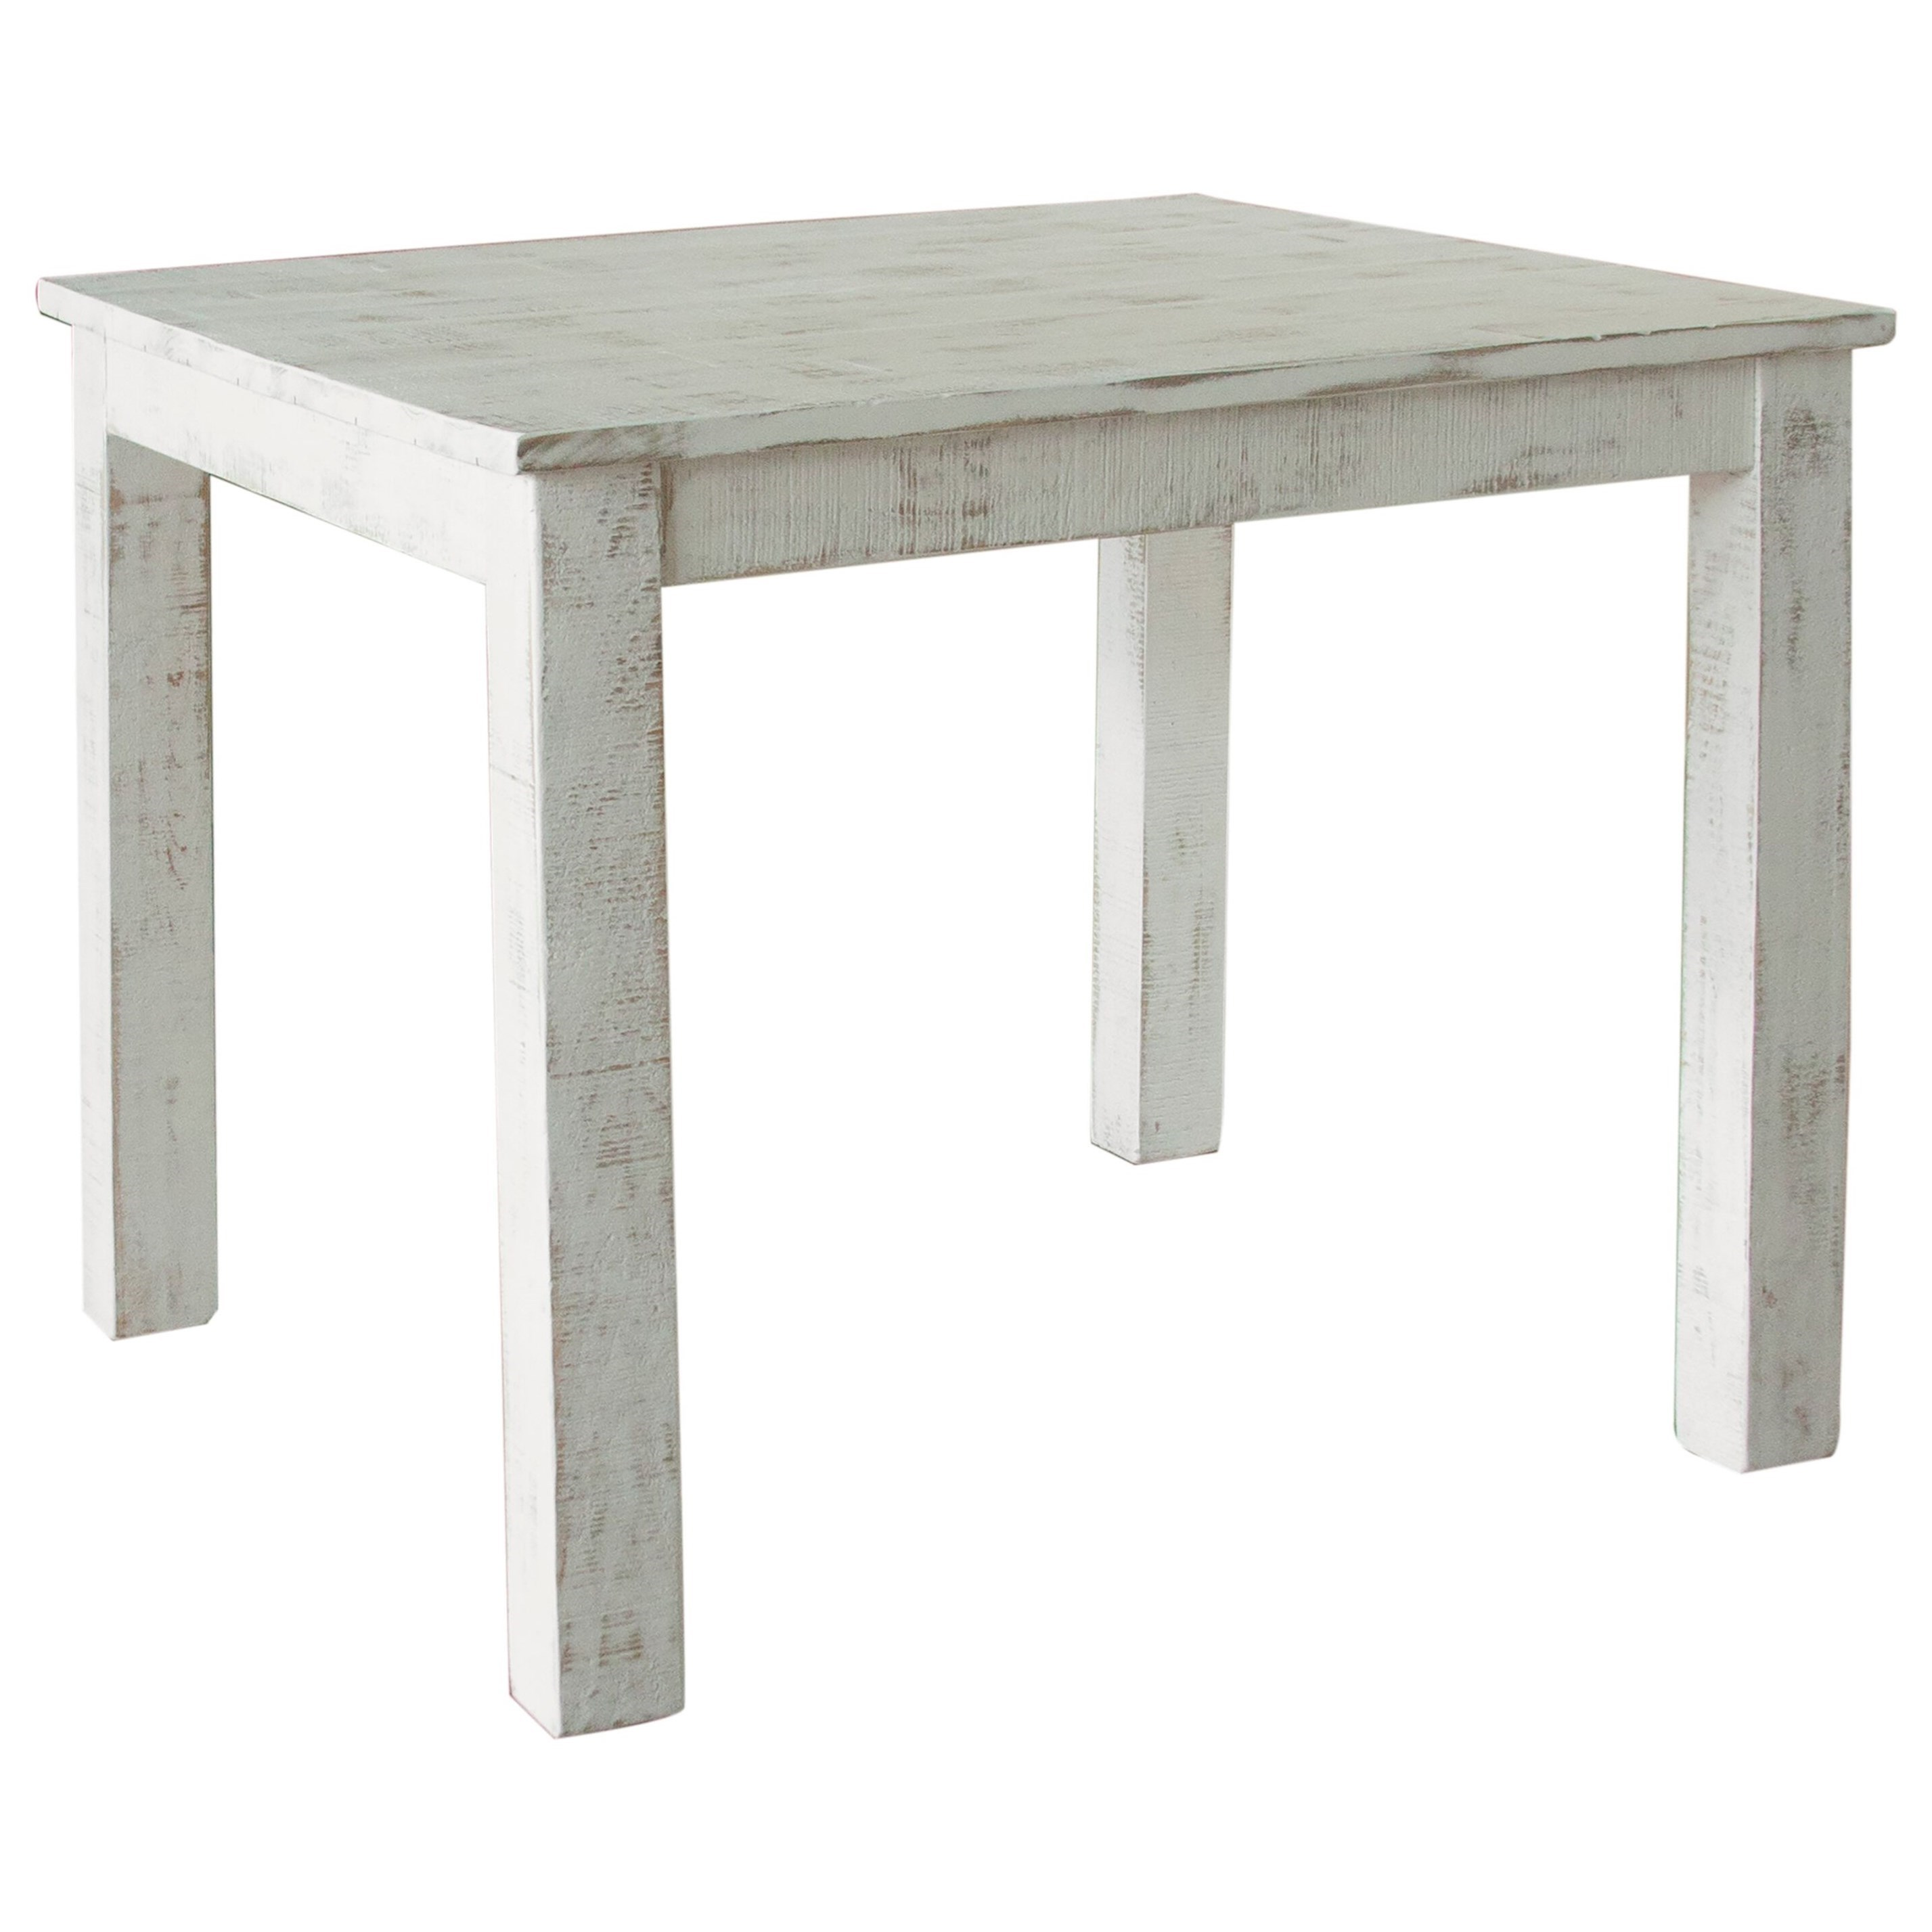 "Pueblo 42"" Counter Table by International Furniture Direct at VanDrie Home Furnishings"